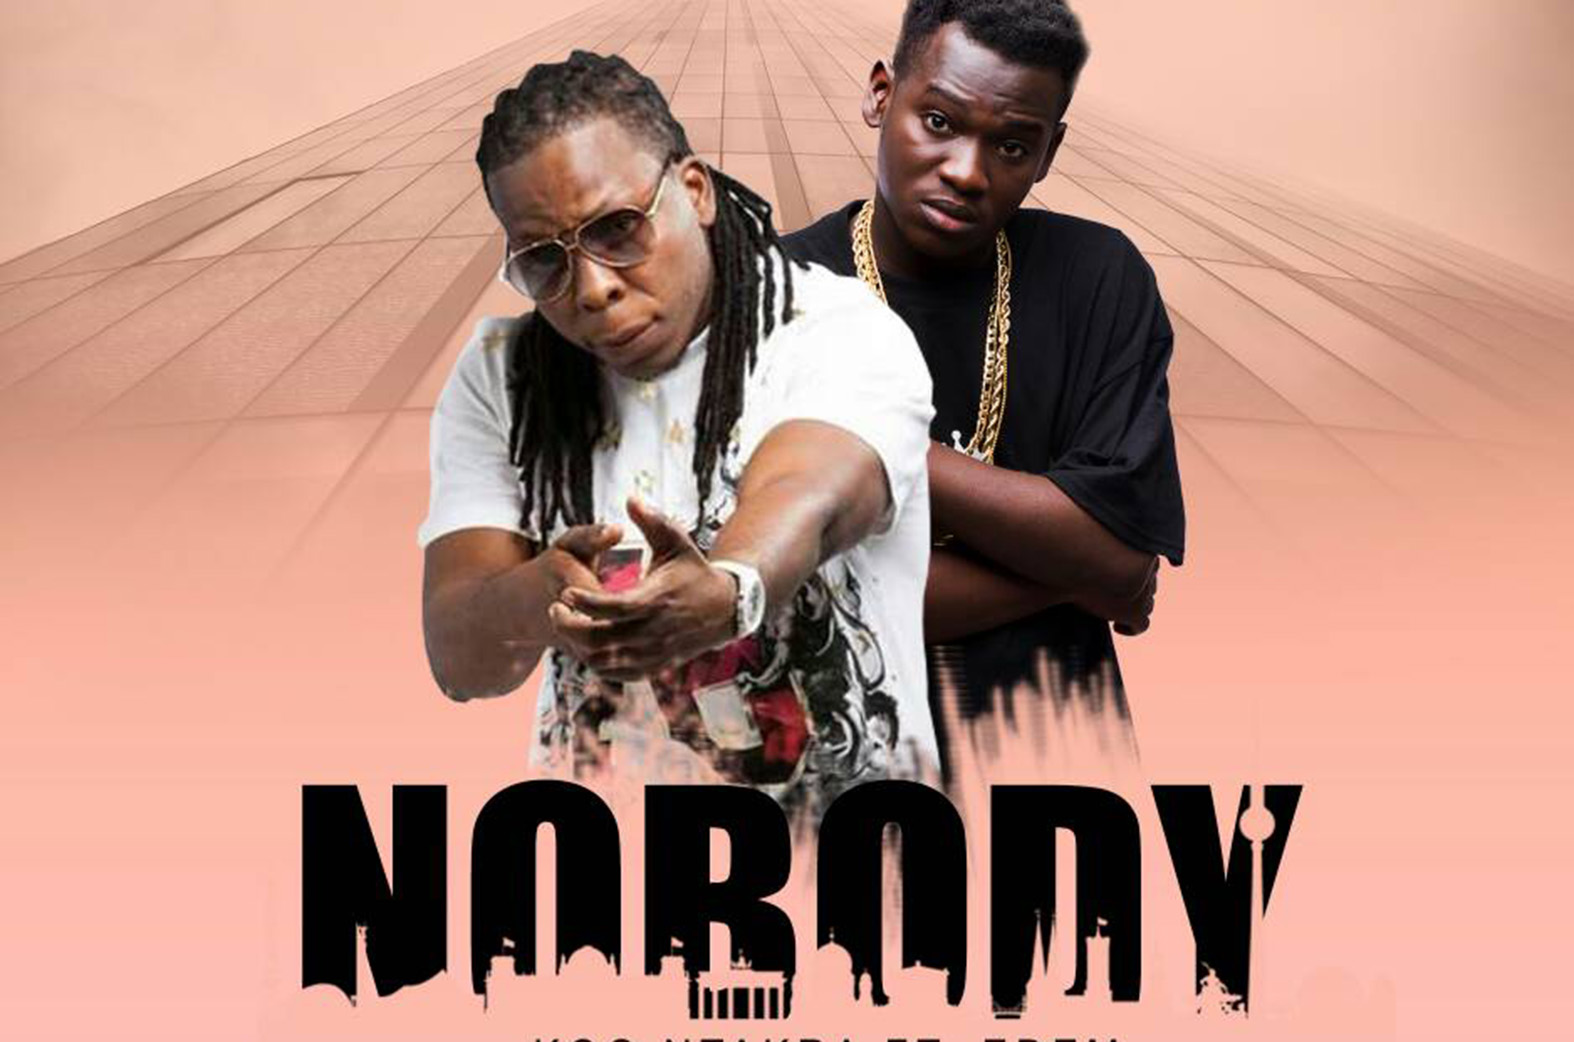 Who was Koo Ntakra & Edem referring to on 'Nobody' song?